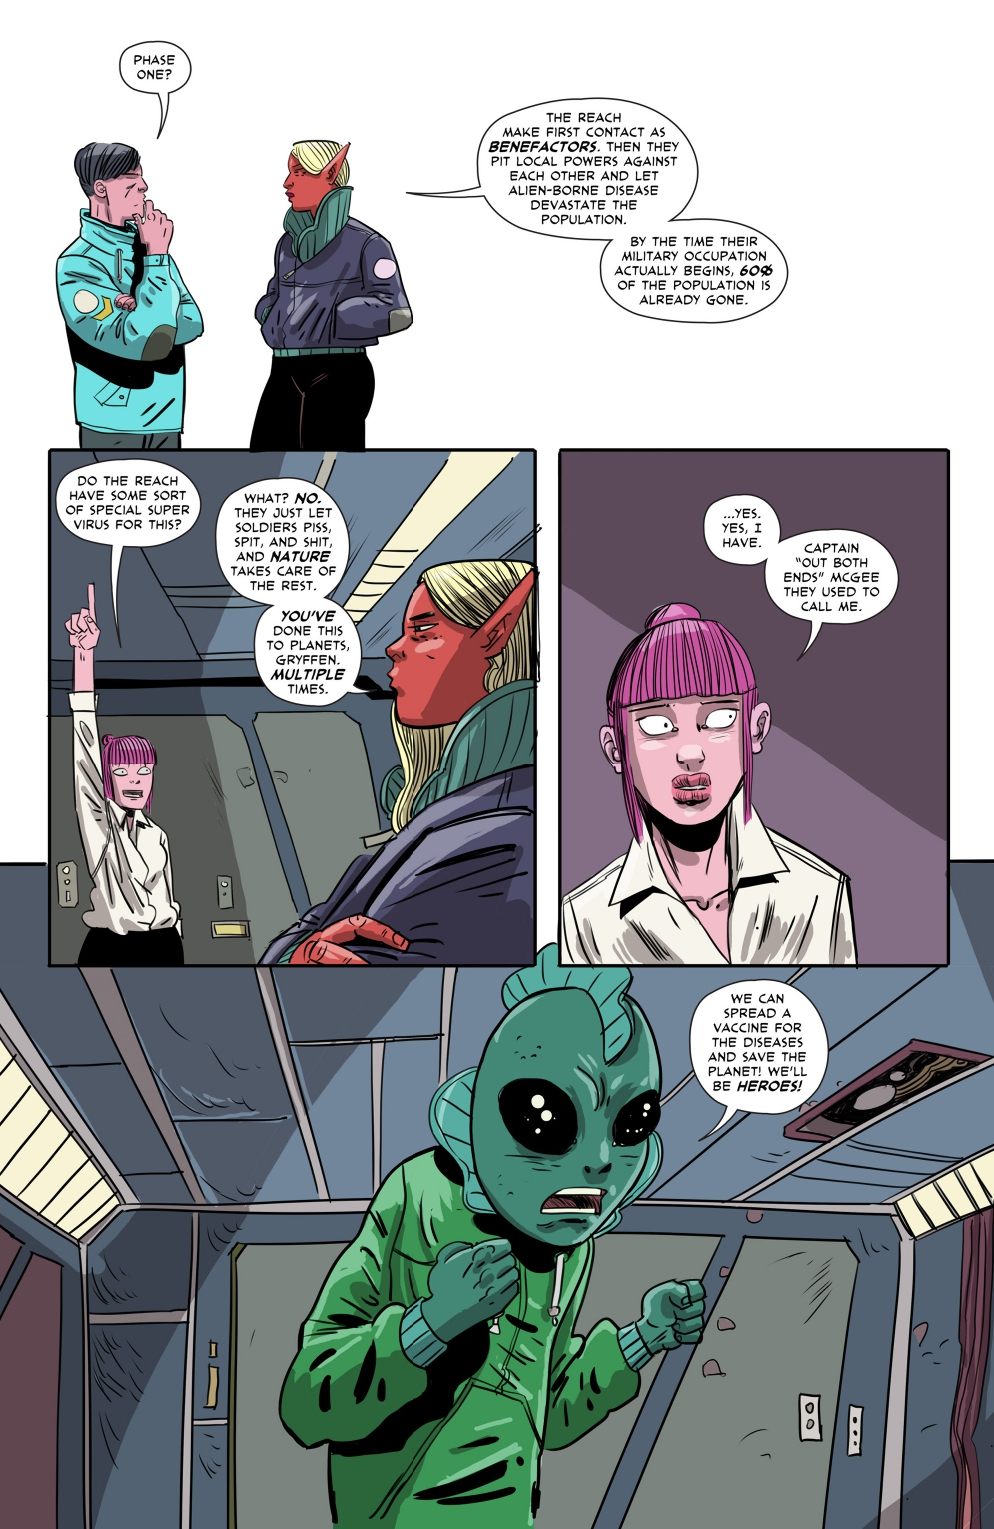 Gryffen: Galaxy's Most Wanted #7; Page 7, SBI Press.